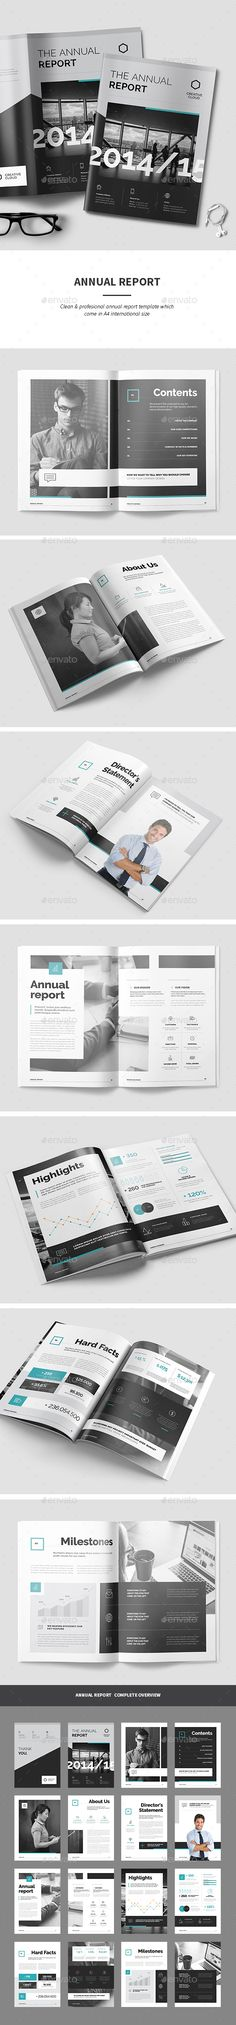 ASER Annual Report Annual reports, Brochures and Business brochure - annual report analysis sample